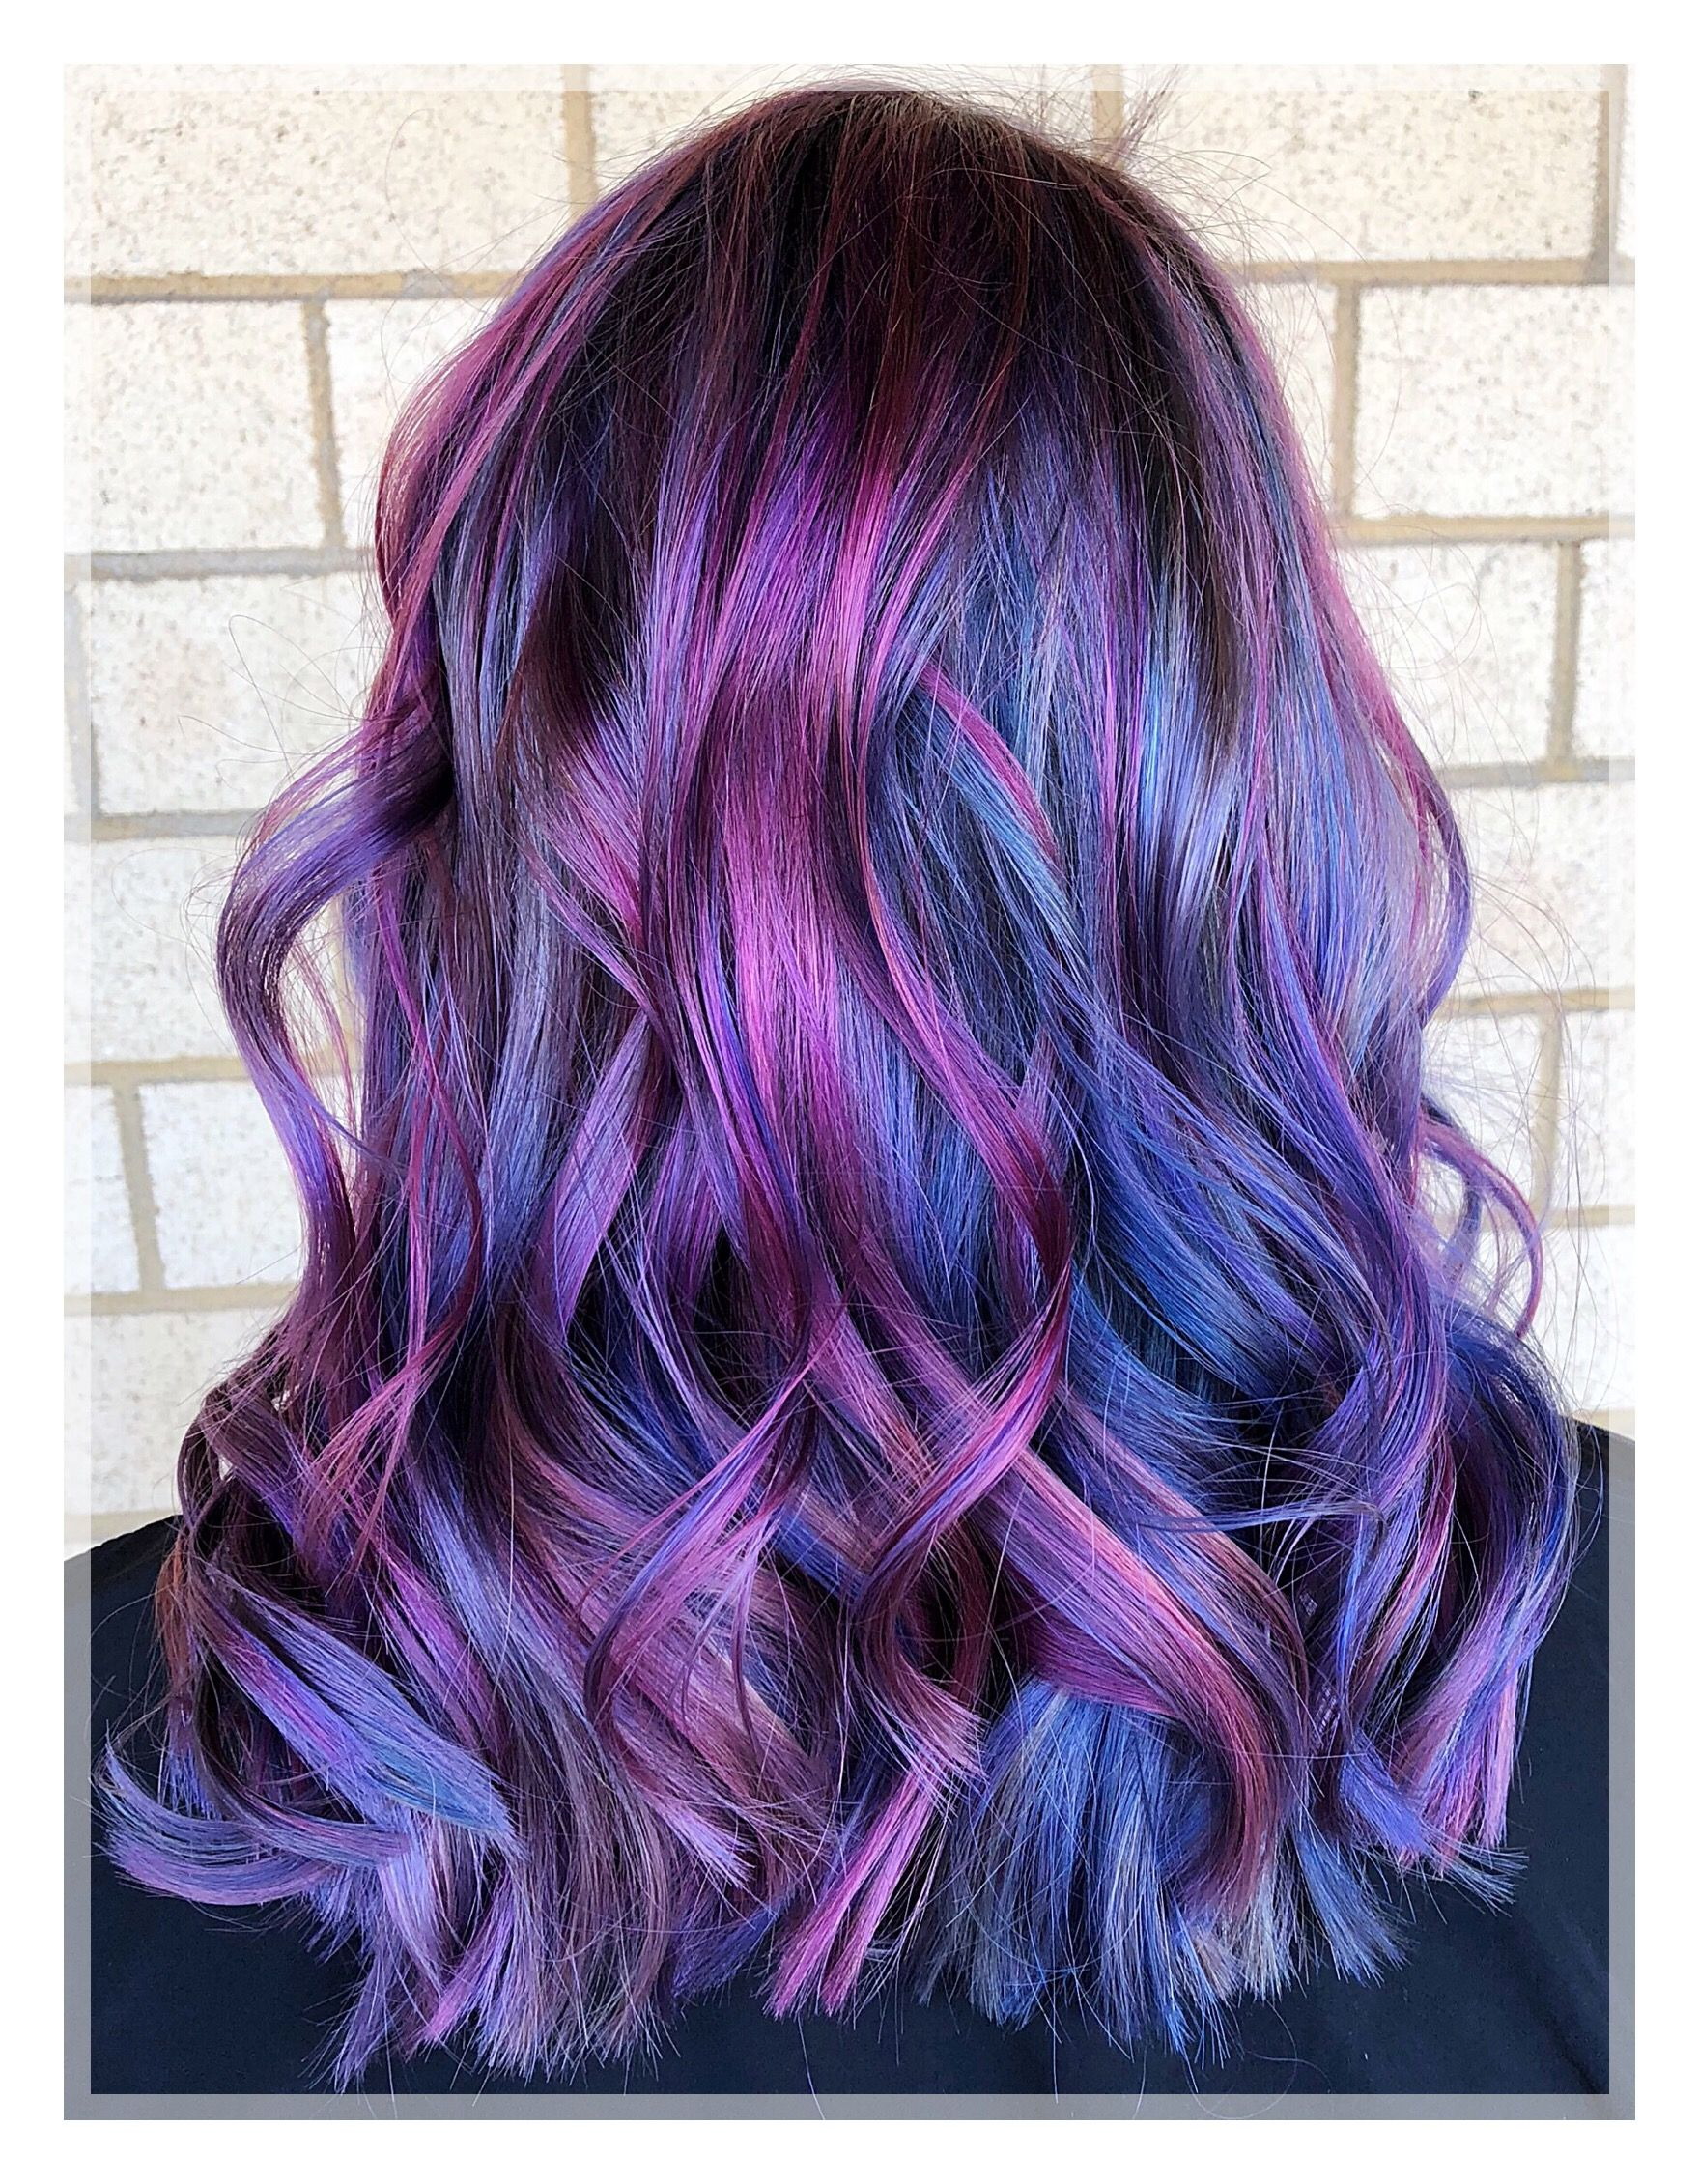 Stunning Dimensional Violet Hair Beauty Check Out All The Beautiful Dimension In This Violet Blue And Purple Color Hair Color Blue Purple Hair Hair Color